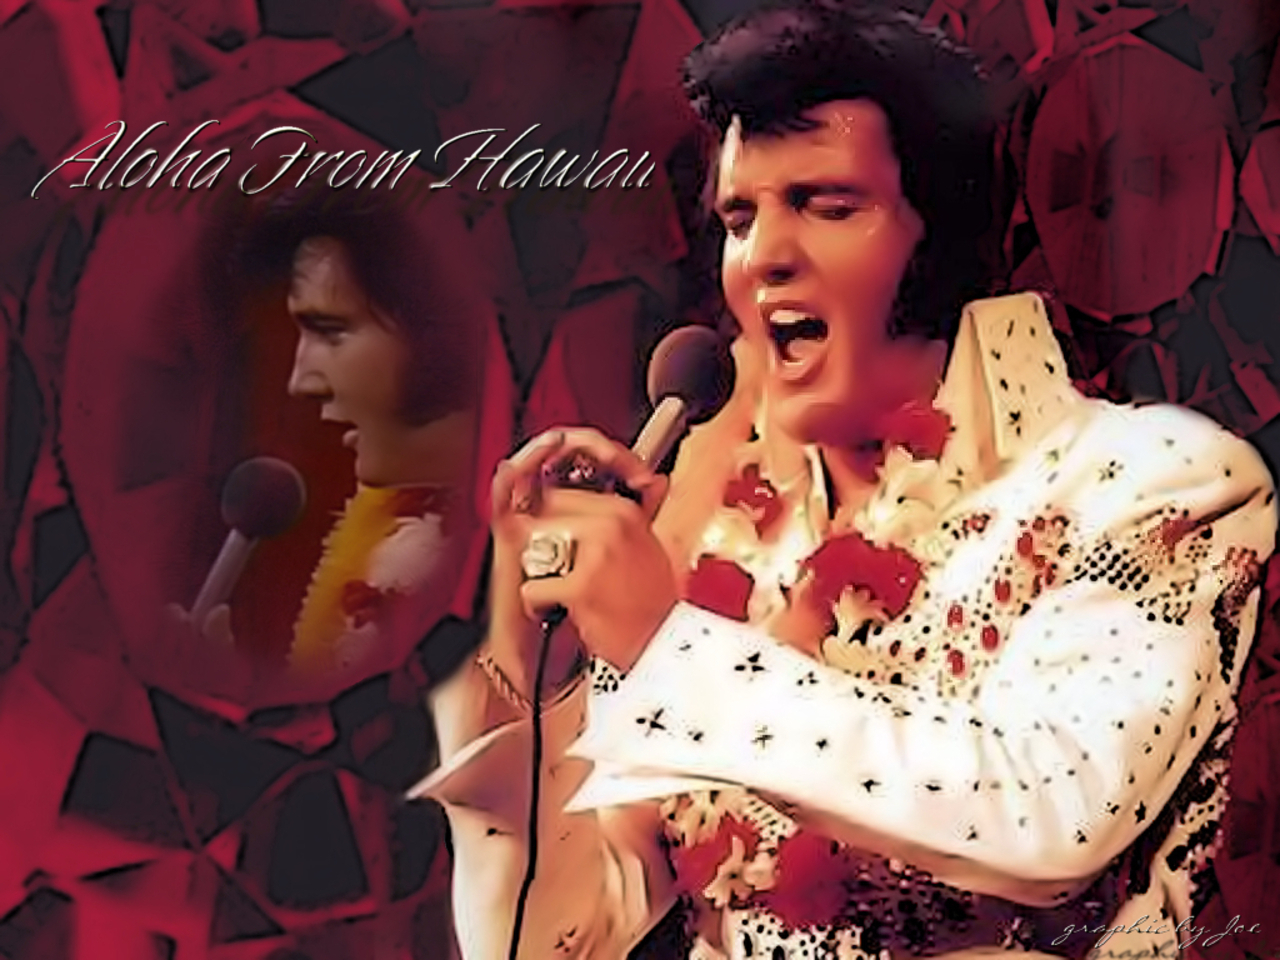 Free Download Elvis Presley Wallpaper Elvis Presley Wallpapers